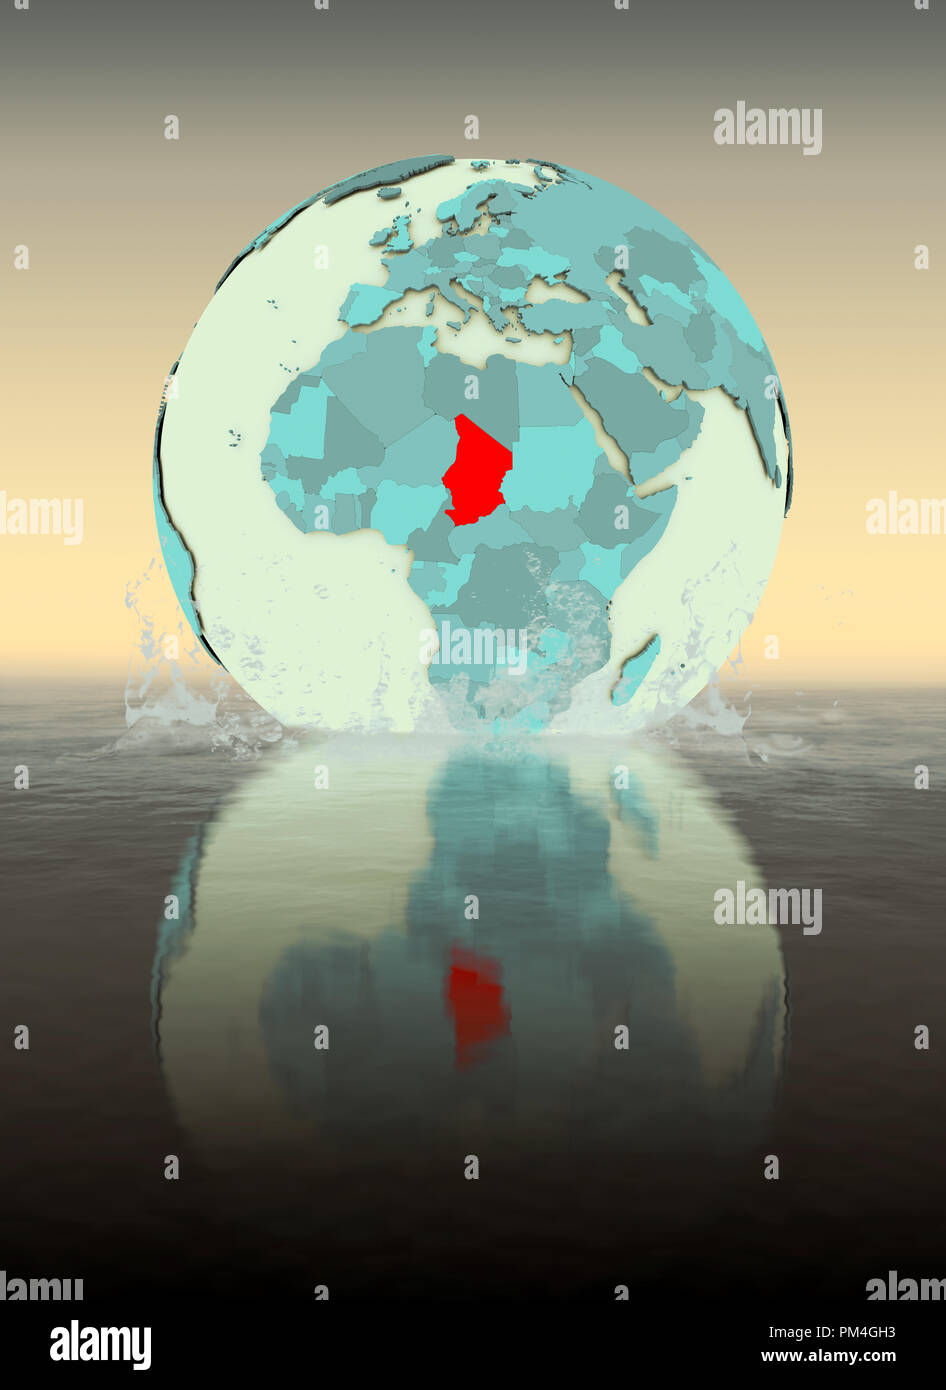 Chad on globe splashed into the water. 3D illustration. - Stock Image